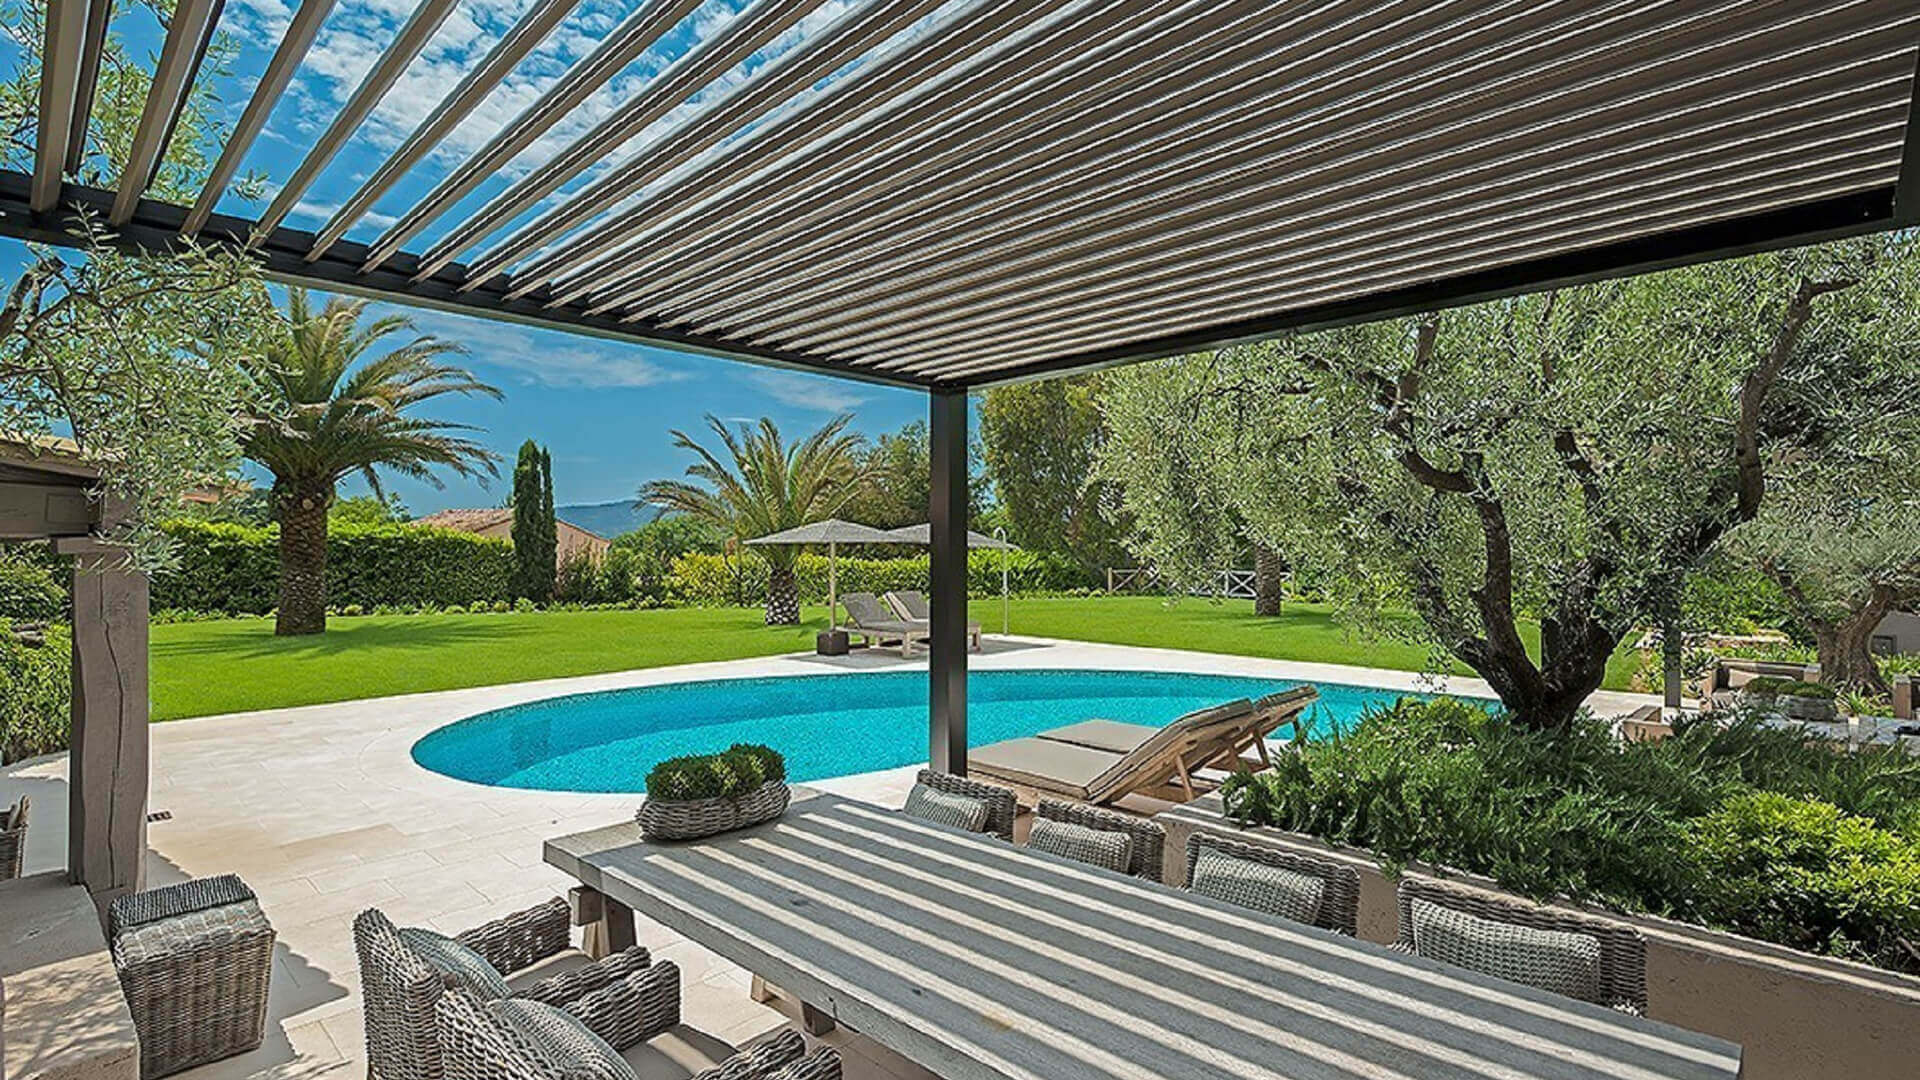 Mougins Long Term Rental Villa patio and swimming pool